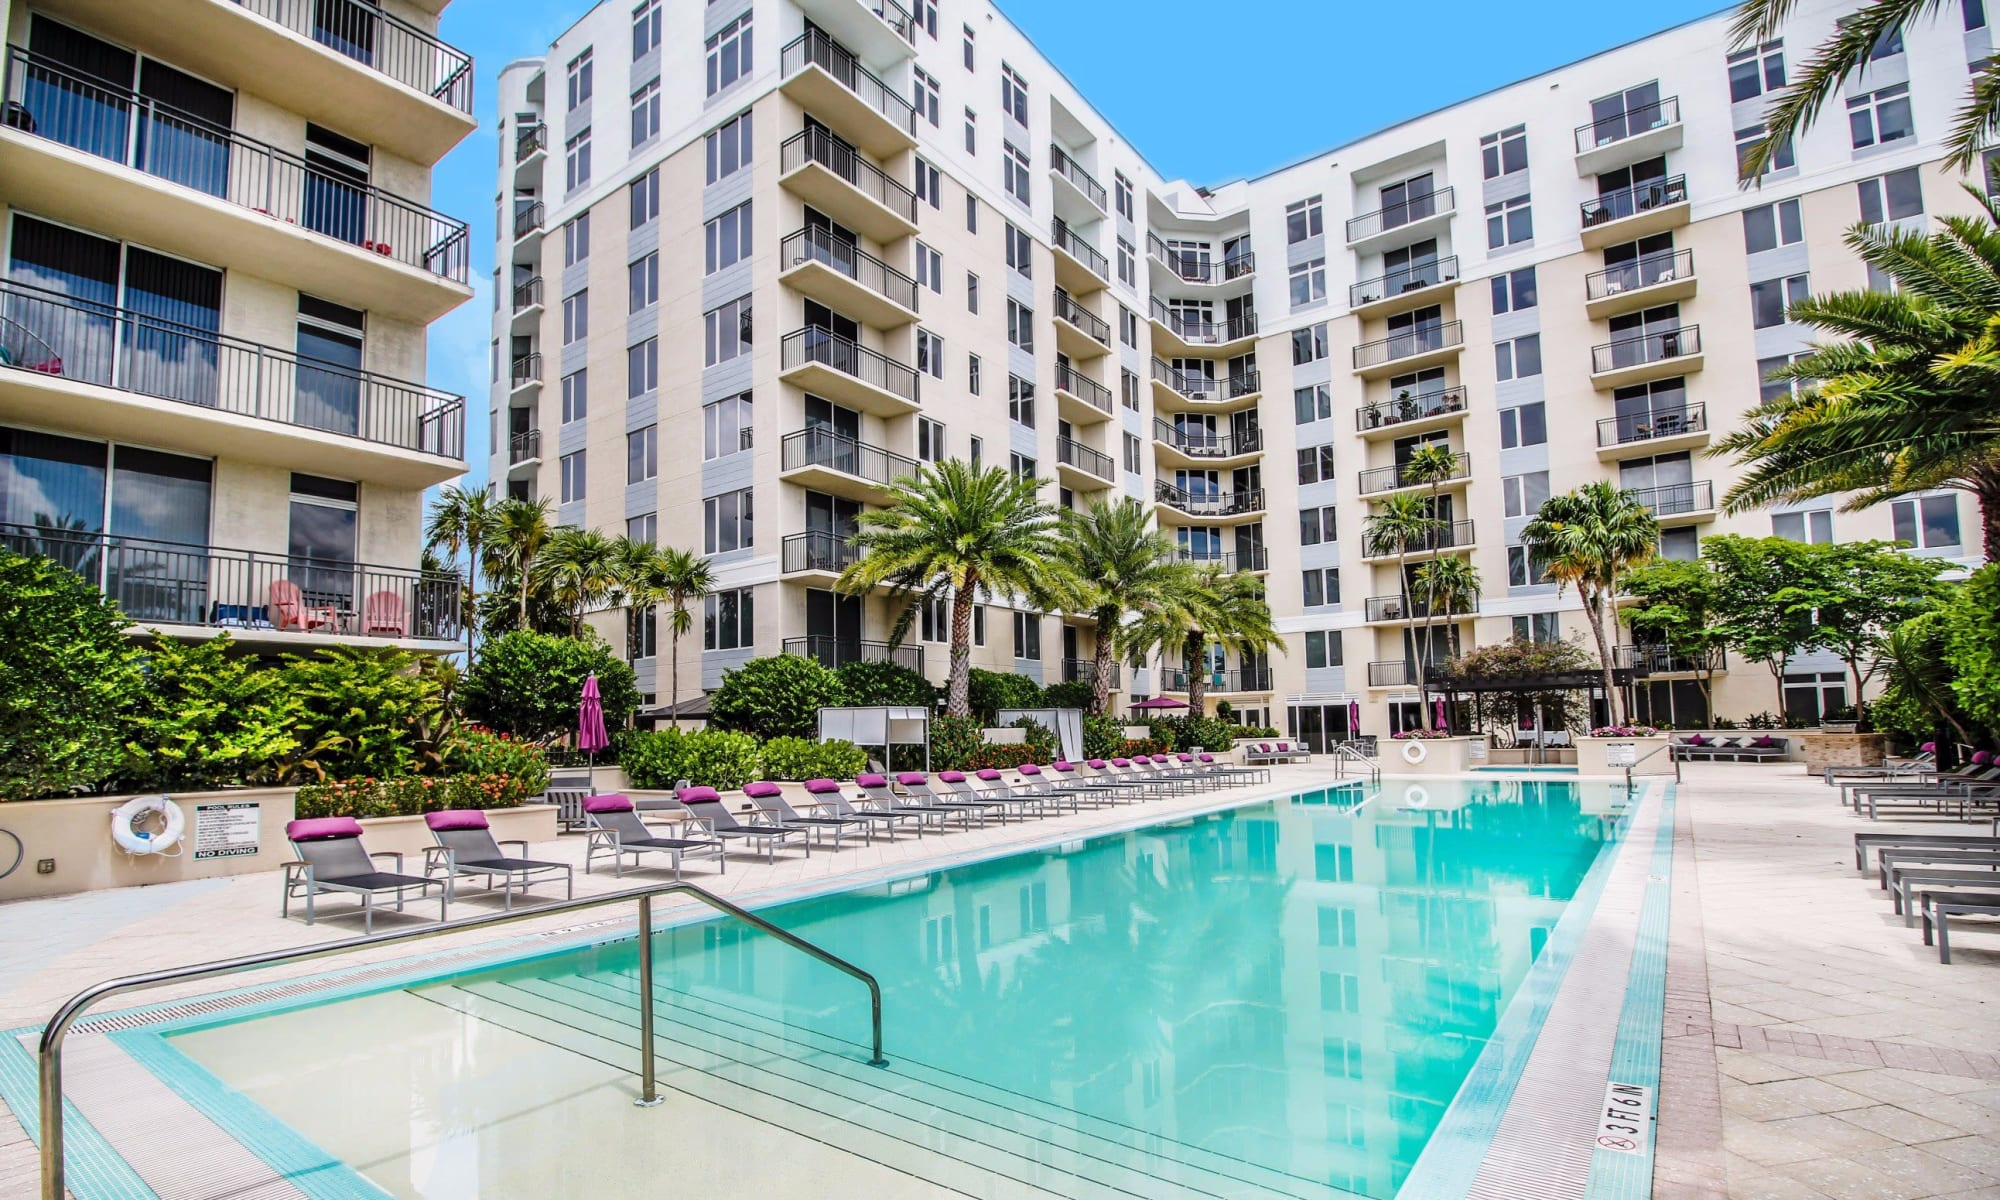 Apartments at Midtown 24 in Plantation, Florida